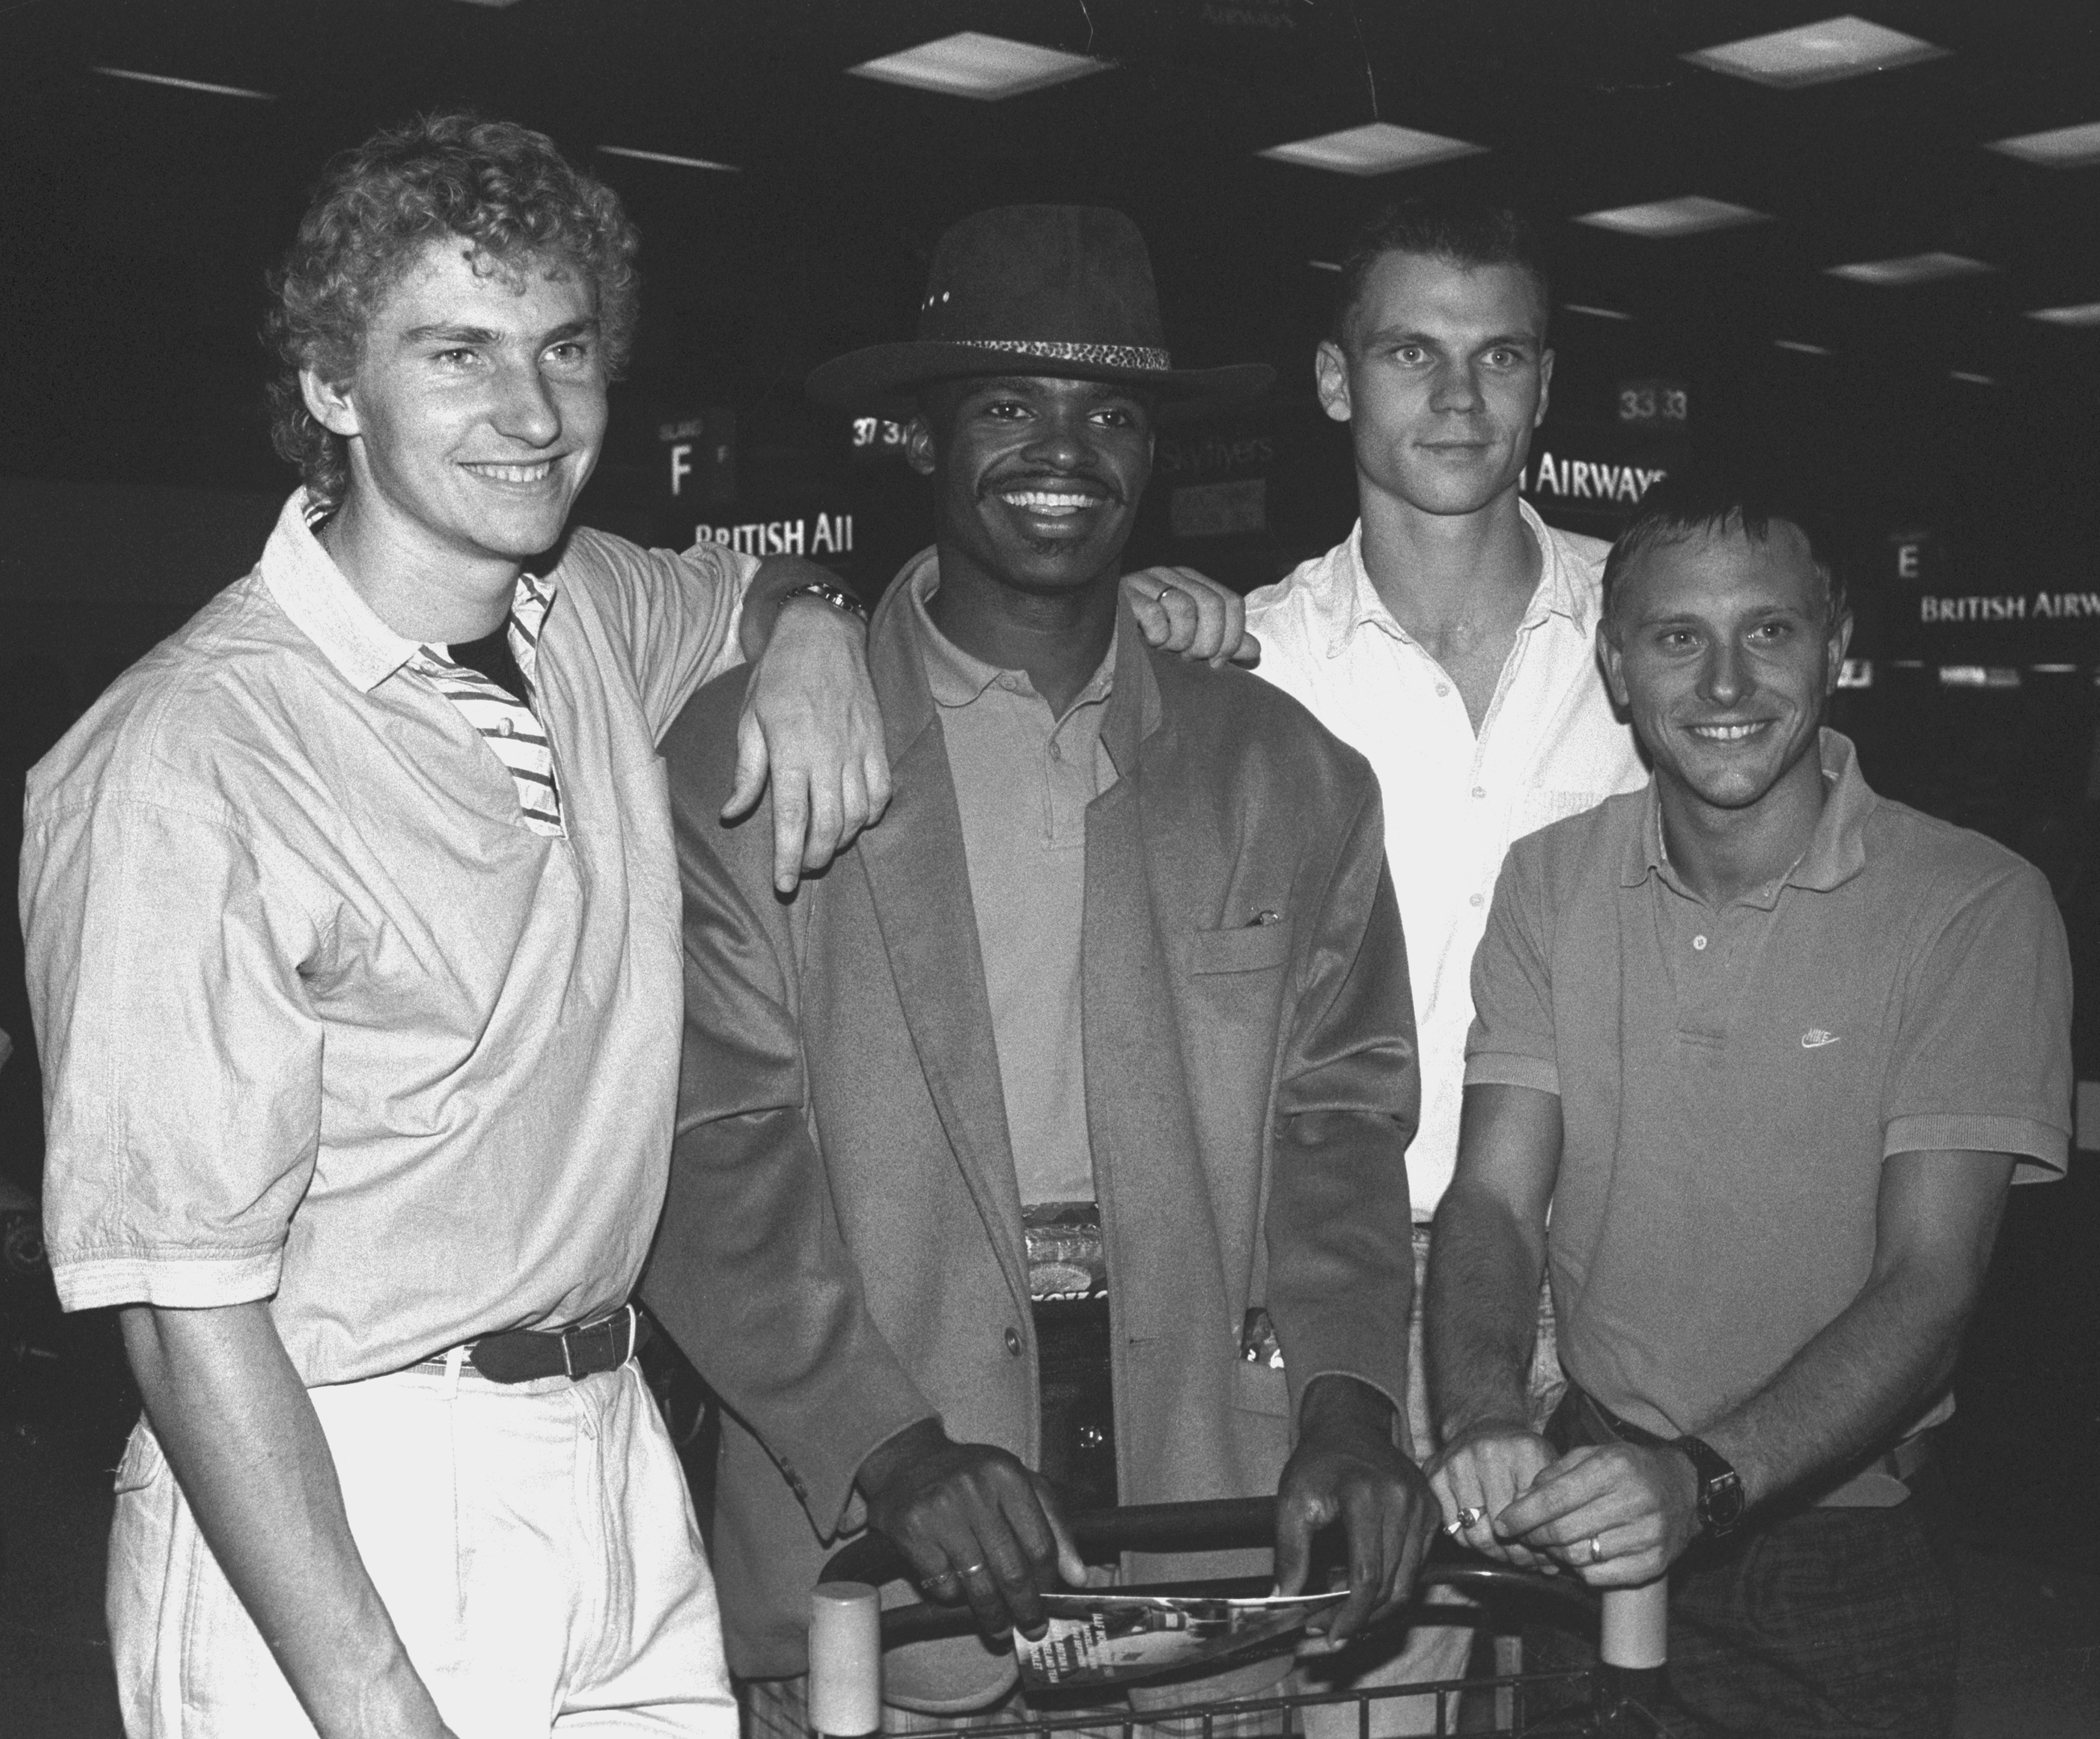 Brian Whittle, pictured in 1989 with fellow World Cup sprint athletes Kris Akabusi, Peter Crampton and Todd Bennett.